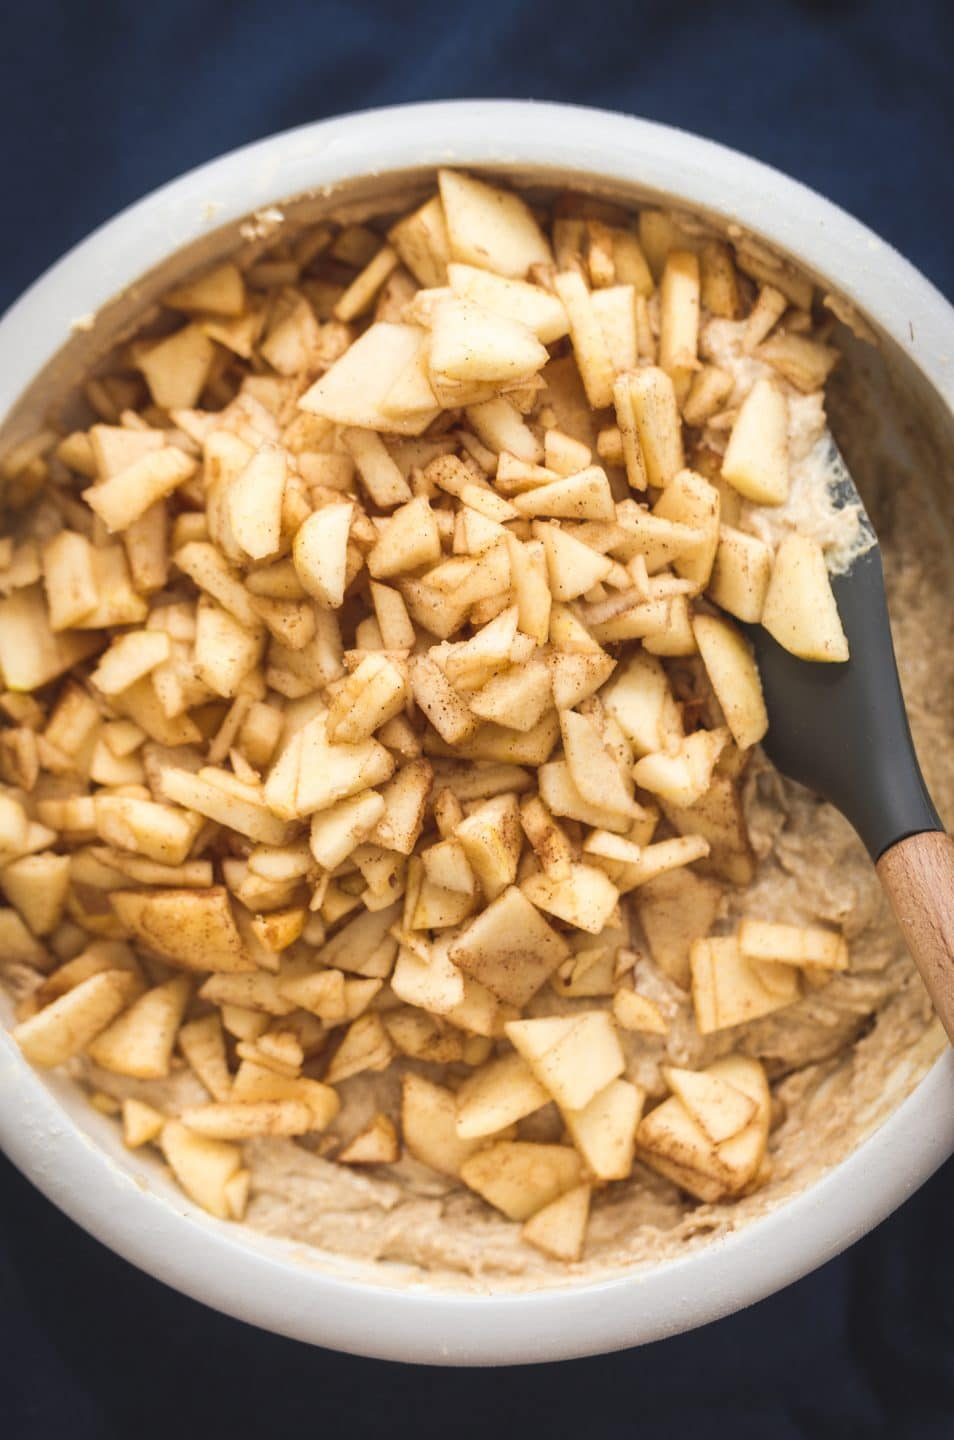 A white mixing bowl filled with cake batter and cinnamon apples being folded in.